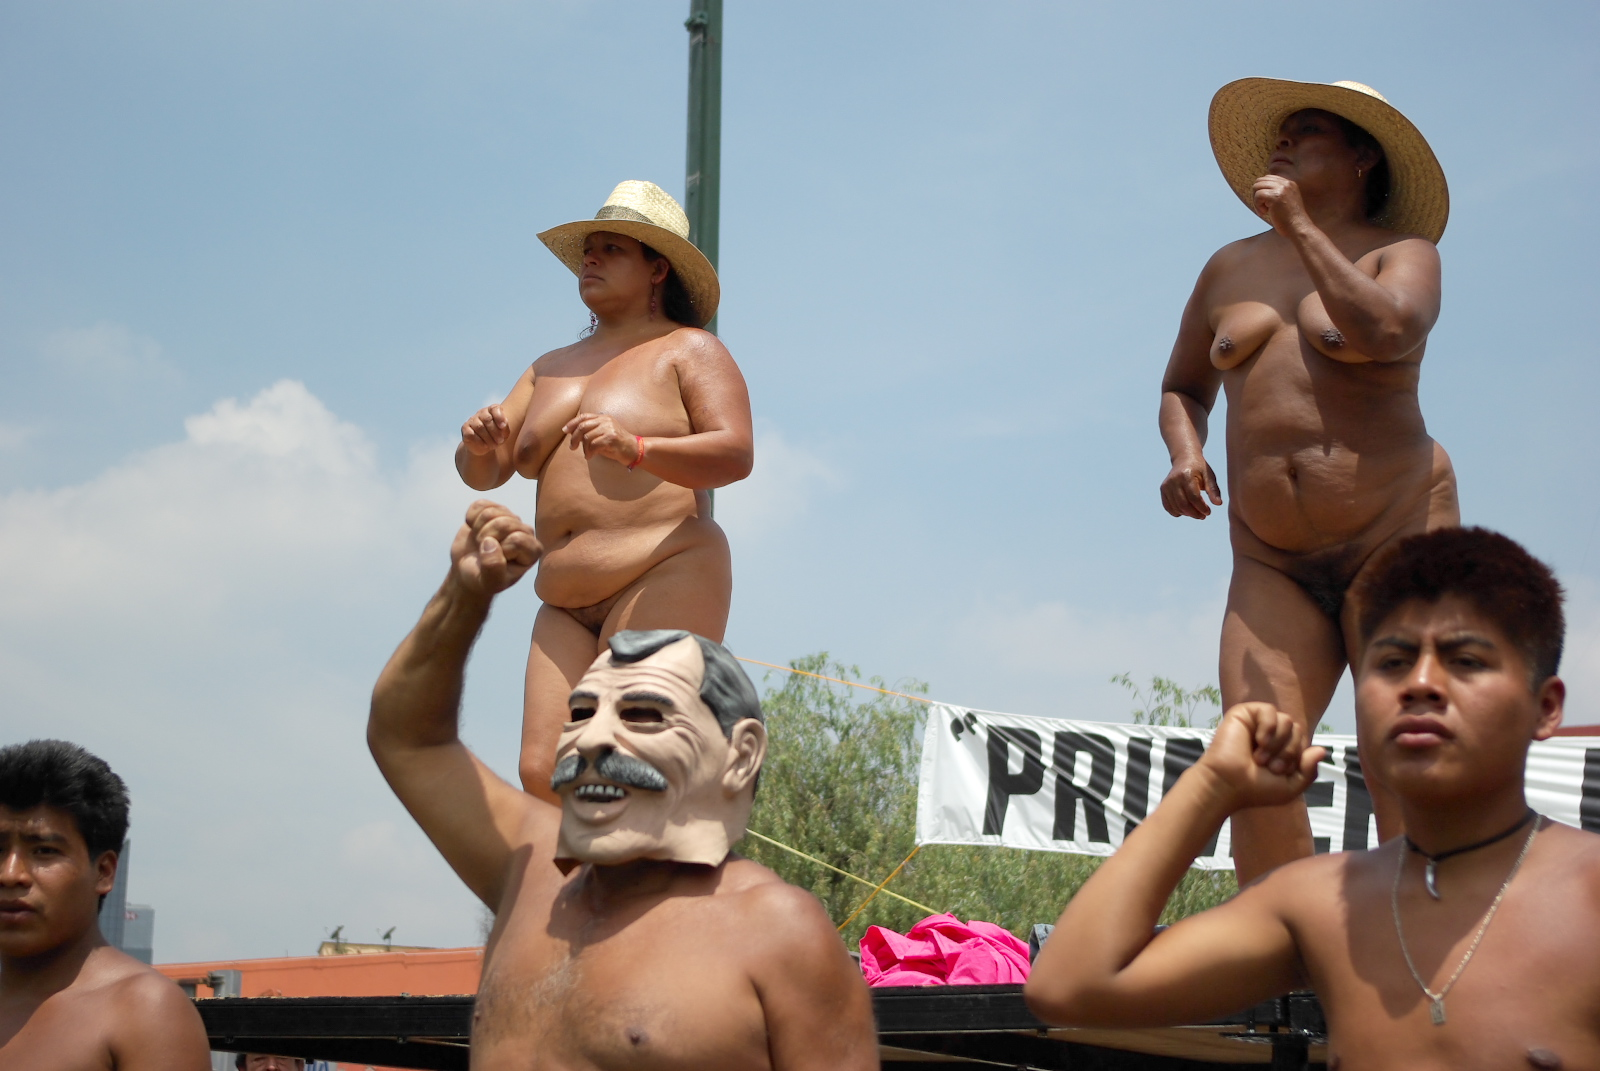 Mexico women naked — photo 9